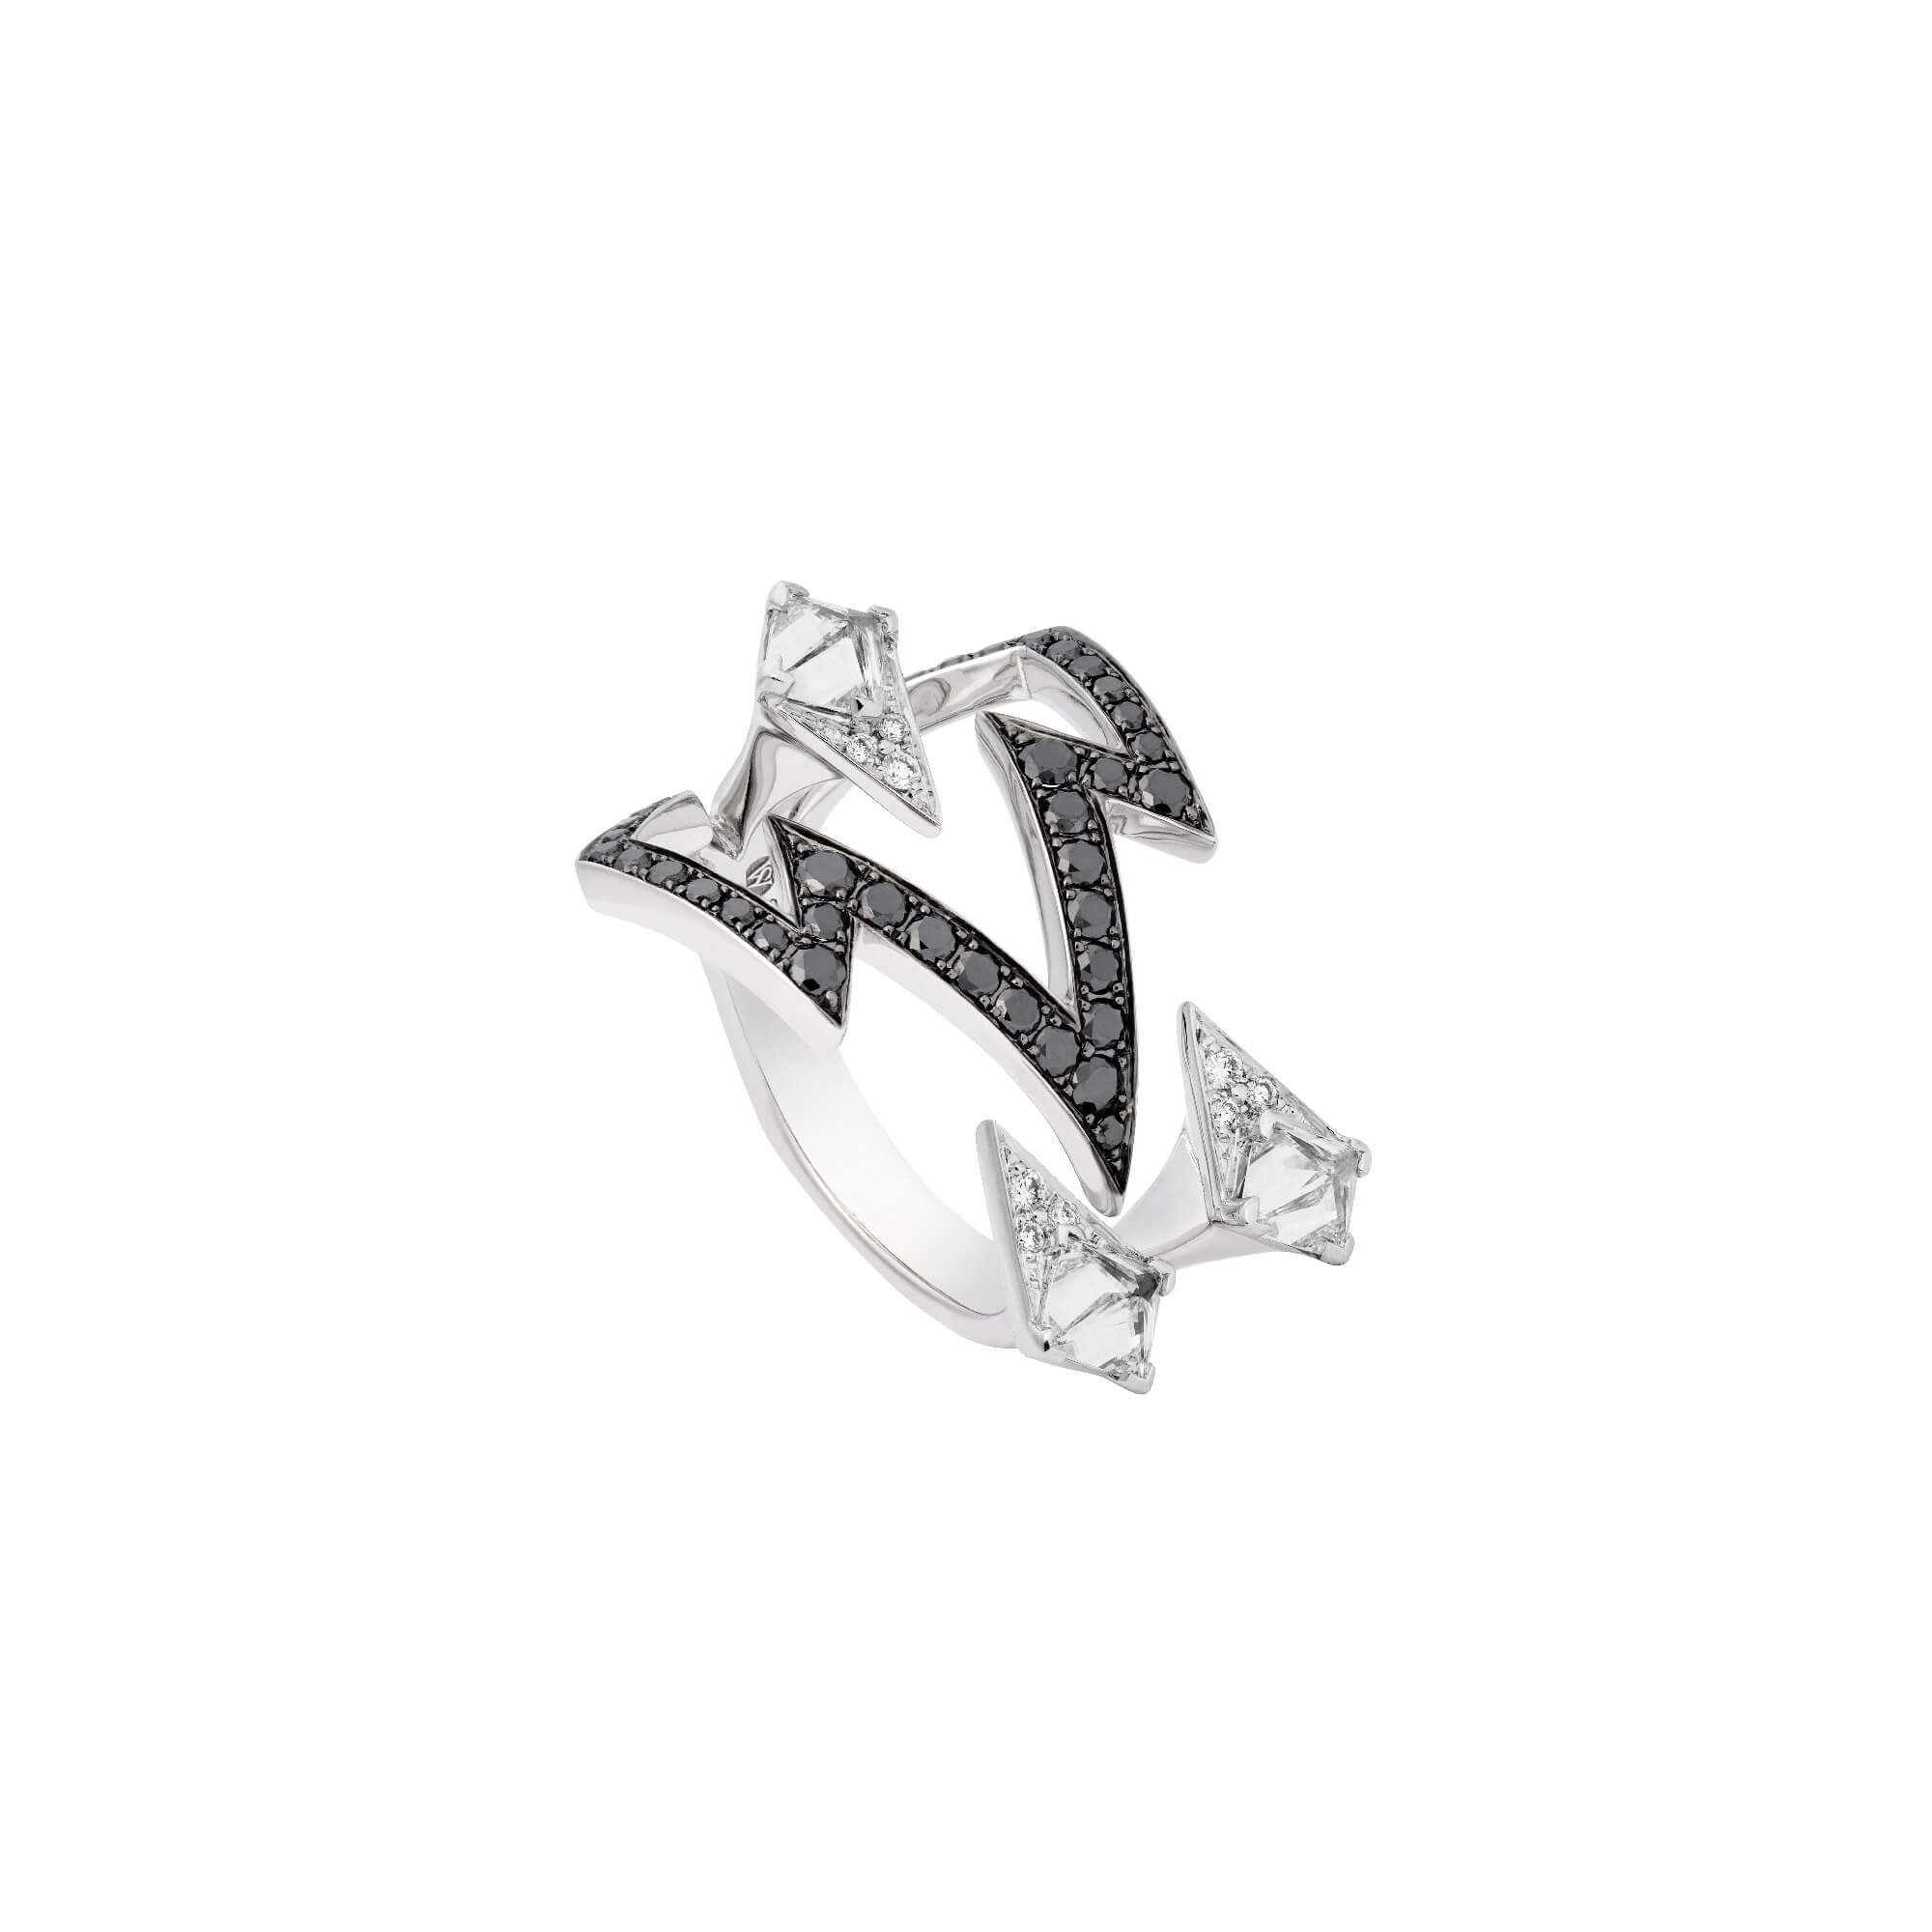 White Gold Bolt Ring With White and Black Diamonds | Lady Stardust